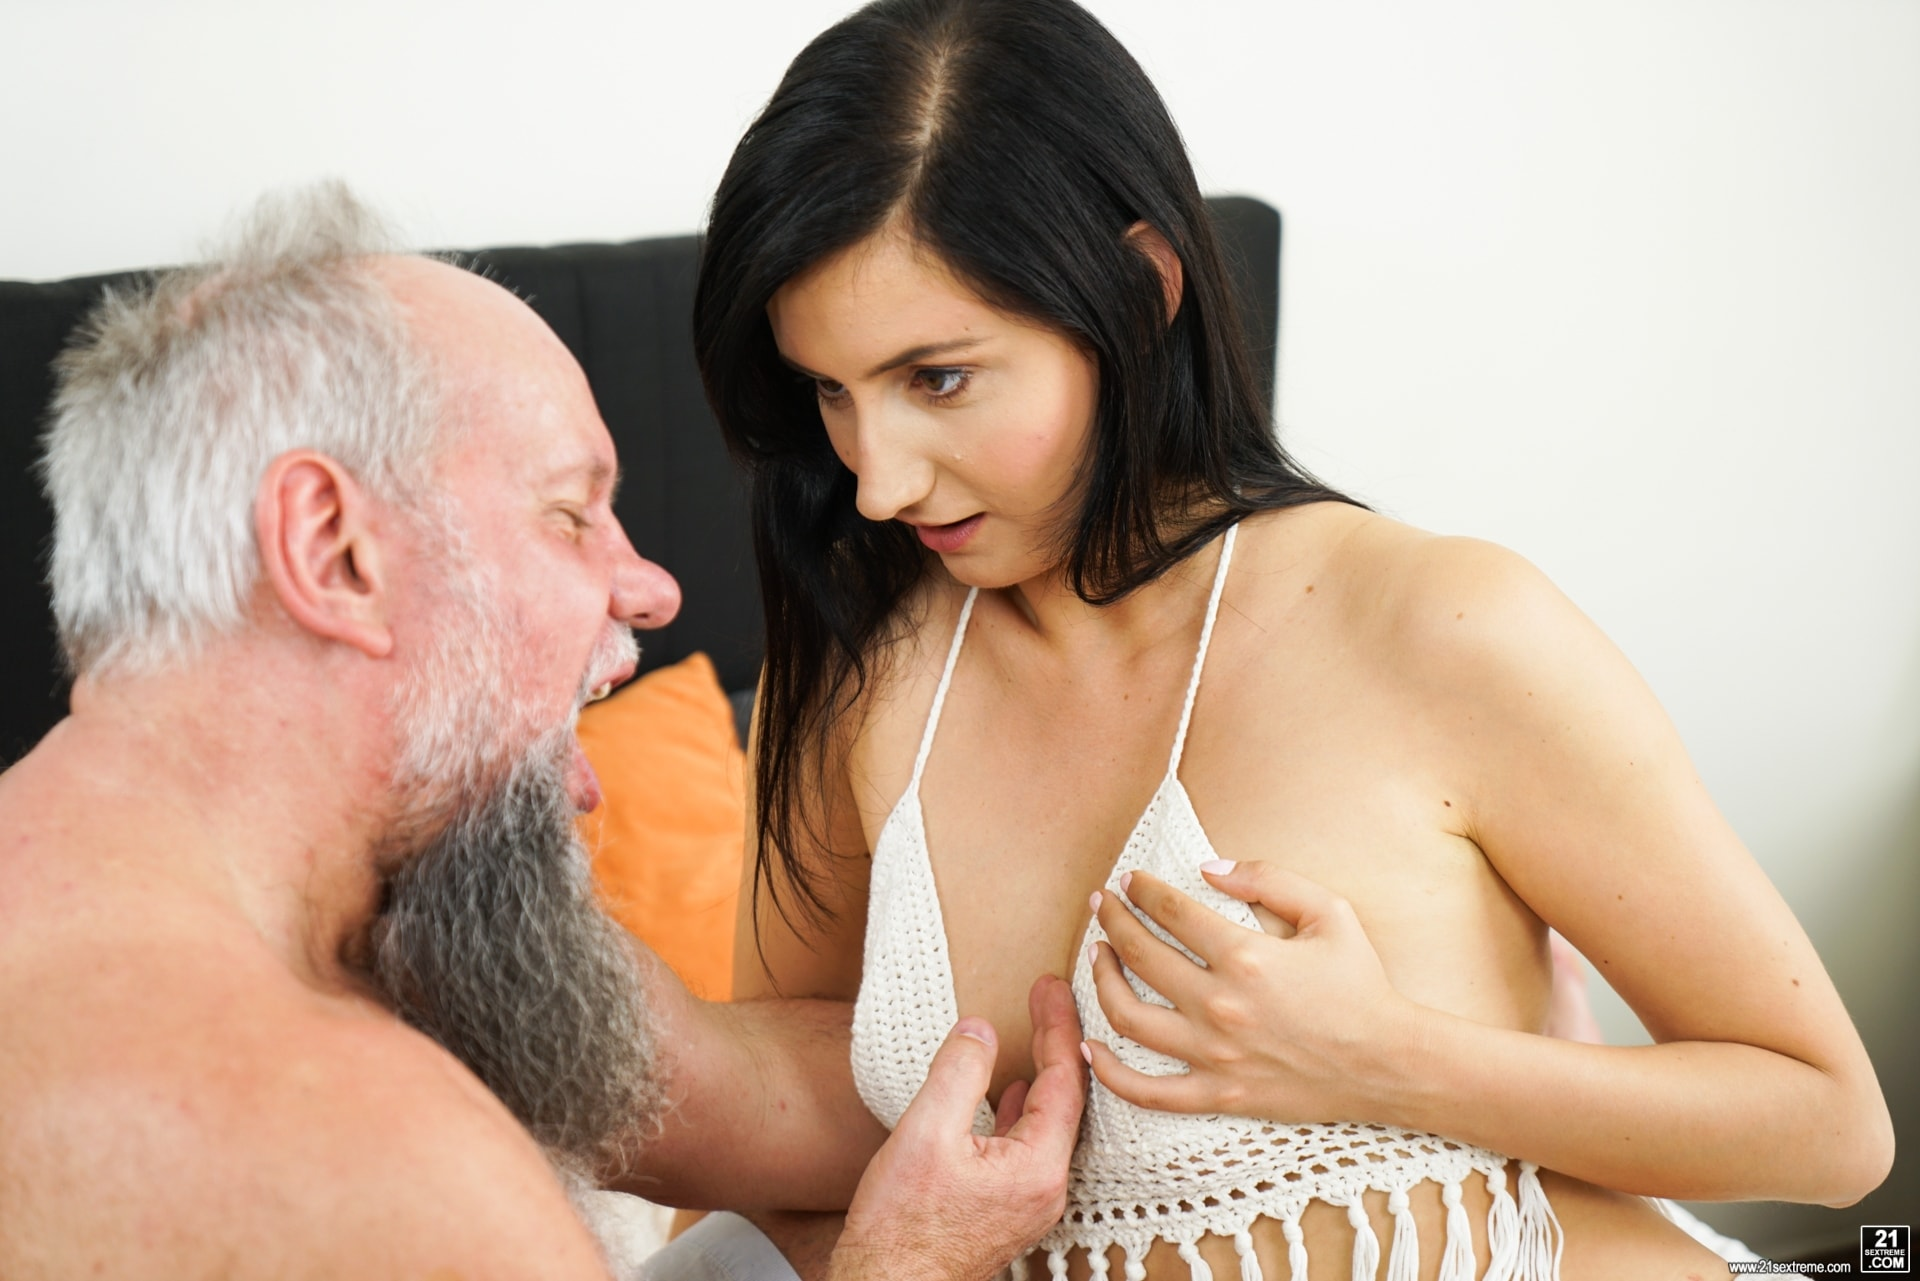 21Sextury 'Don't Let It End' starring Melody Mae (Photo 39)